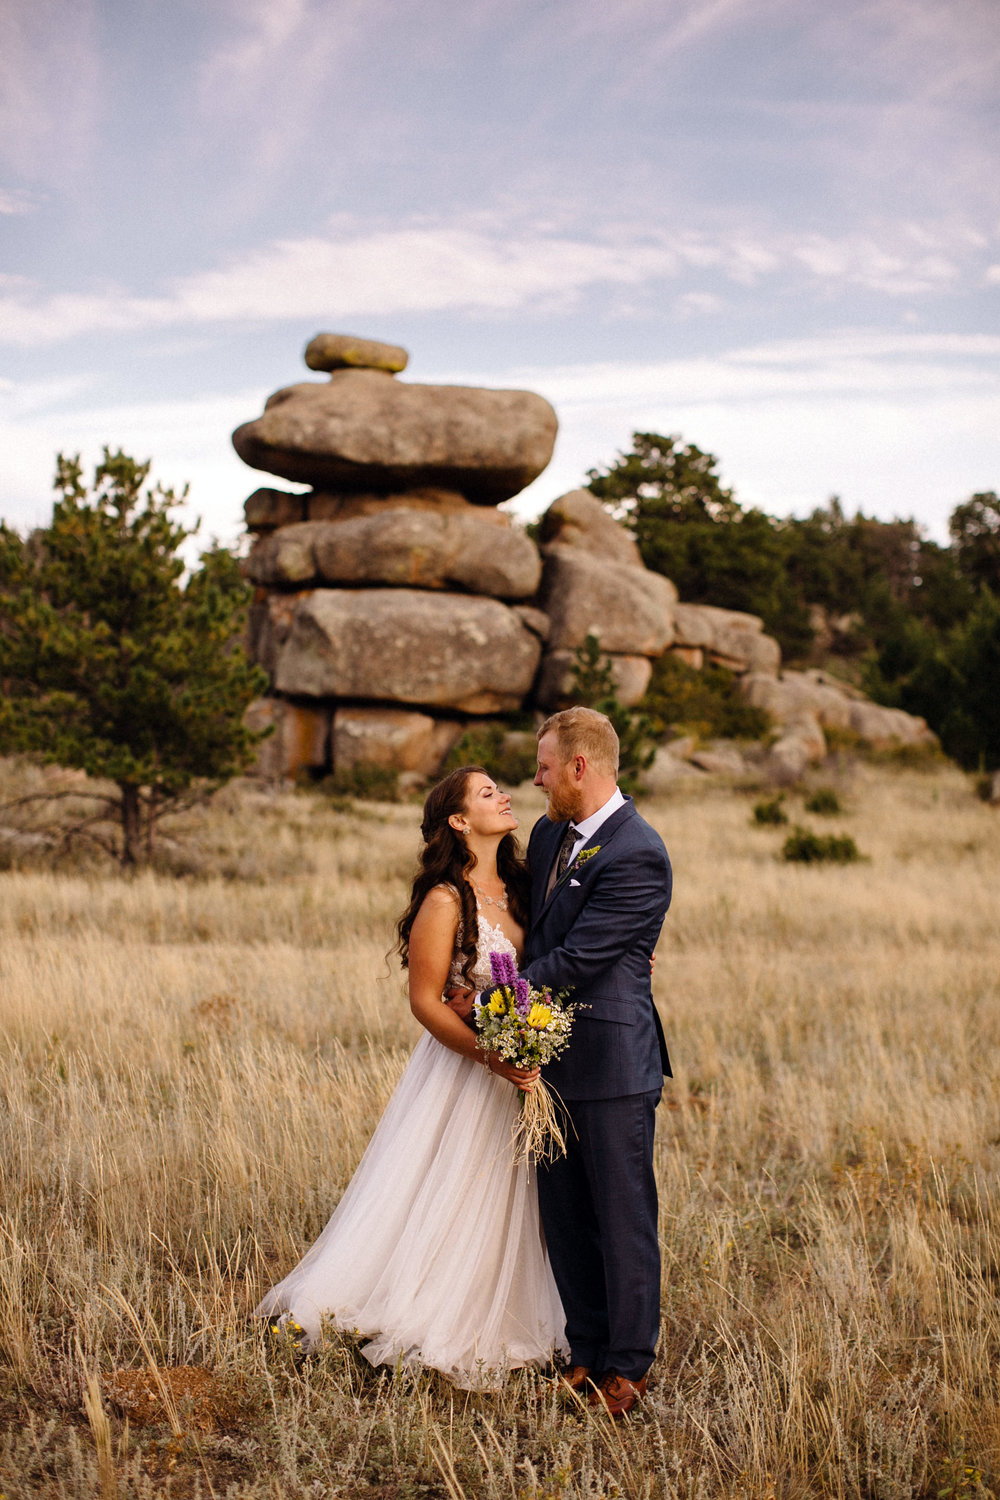 Liz Osban Photography Vedauwoo Buford Wyoming Happy Jack Wedding Elopement Destination Small Forest Cheyenne Laramie Medicine Bow National Forest Portraits Sarah Taylor10.jpg